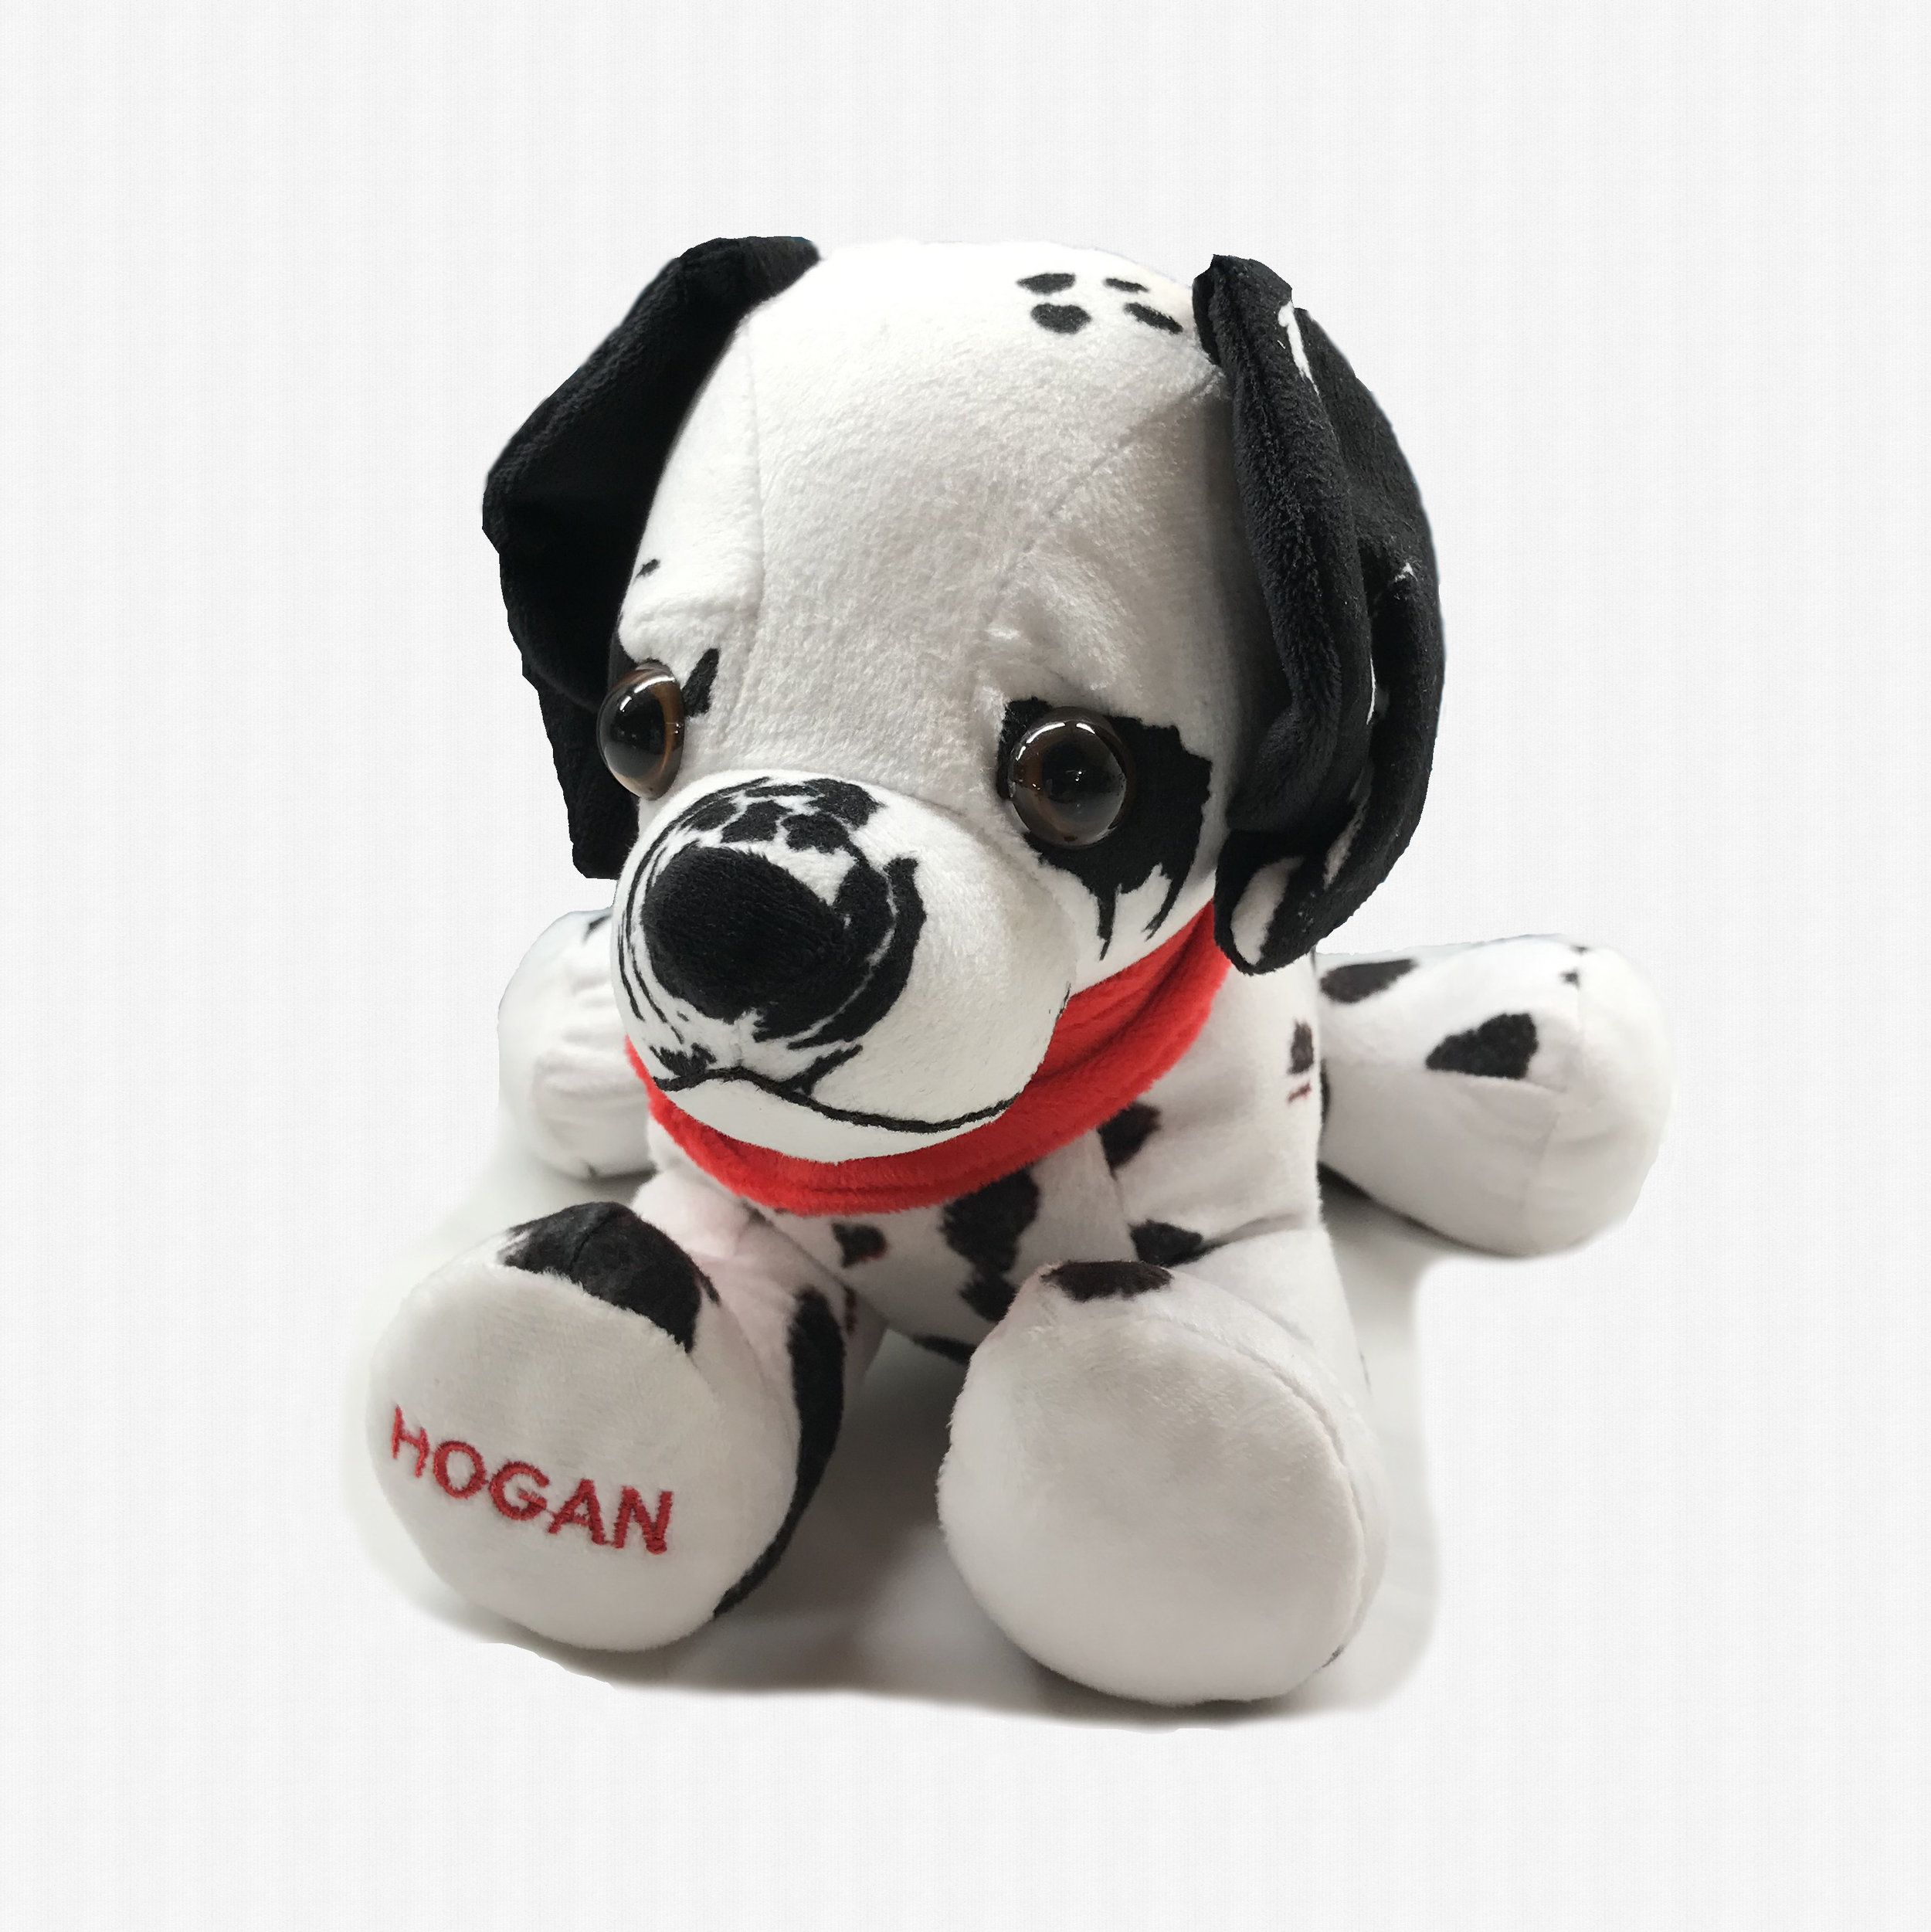 Stuffed toy designed to look like Hogan himself will be available for children!